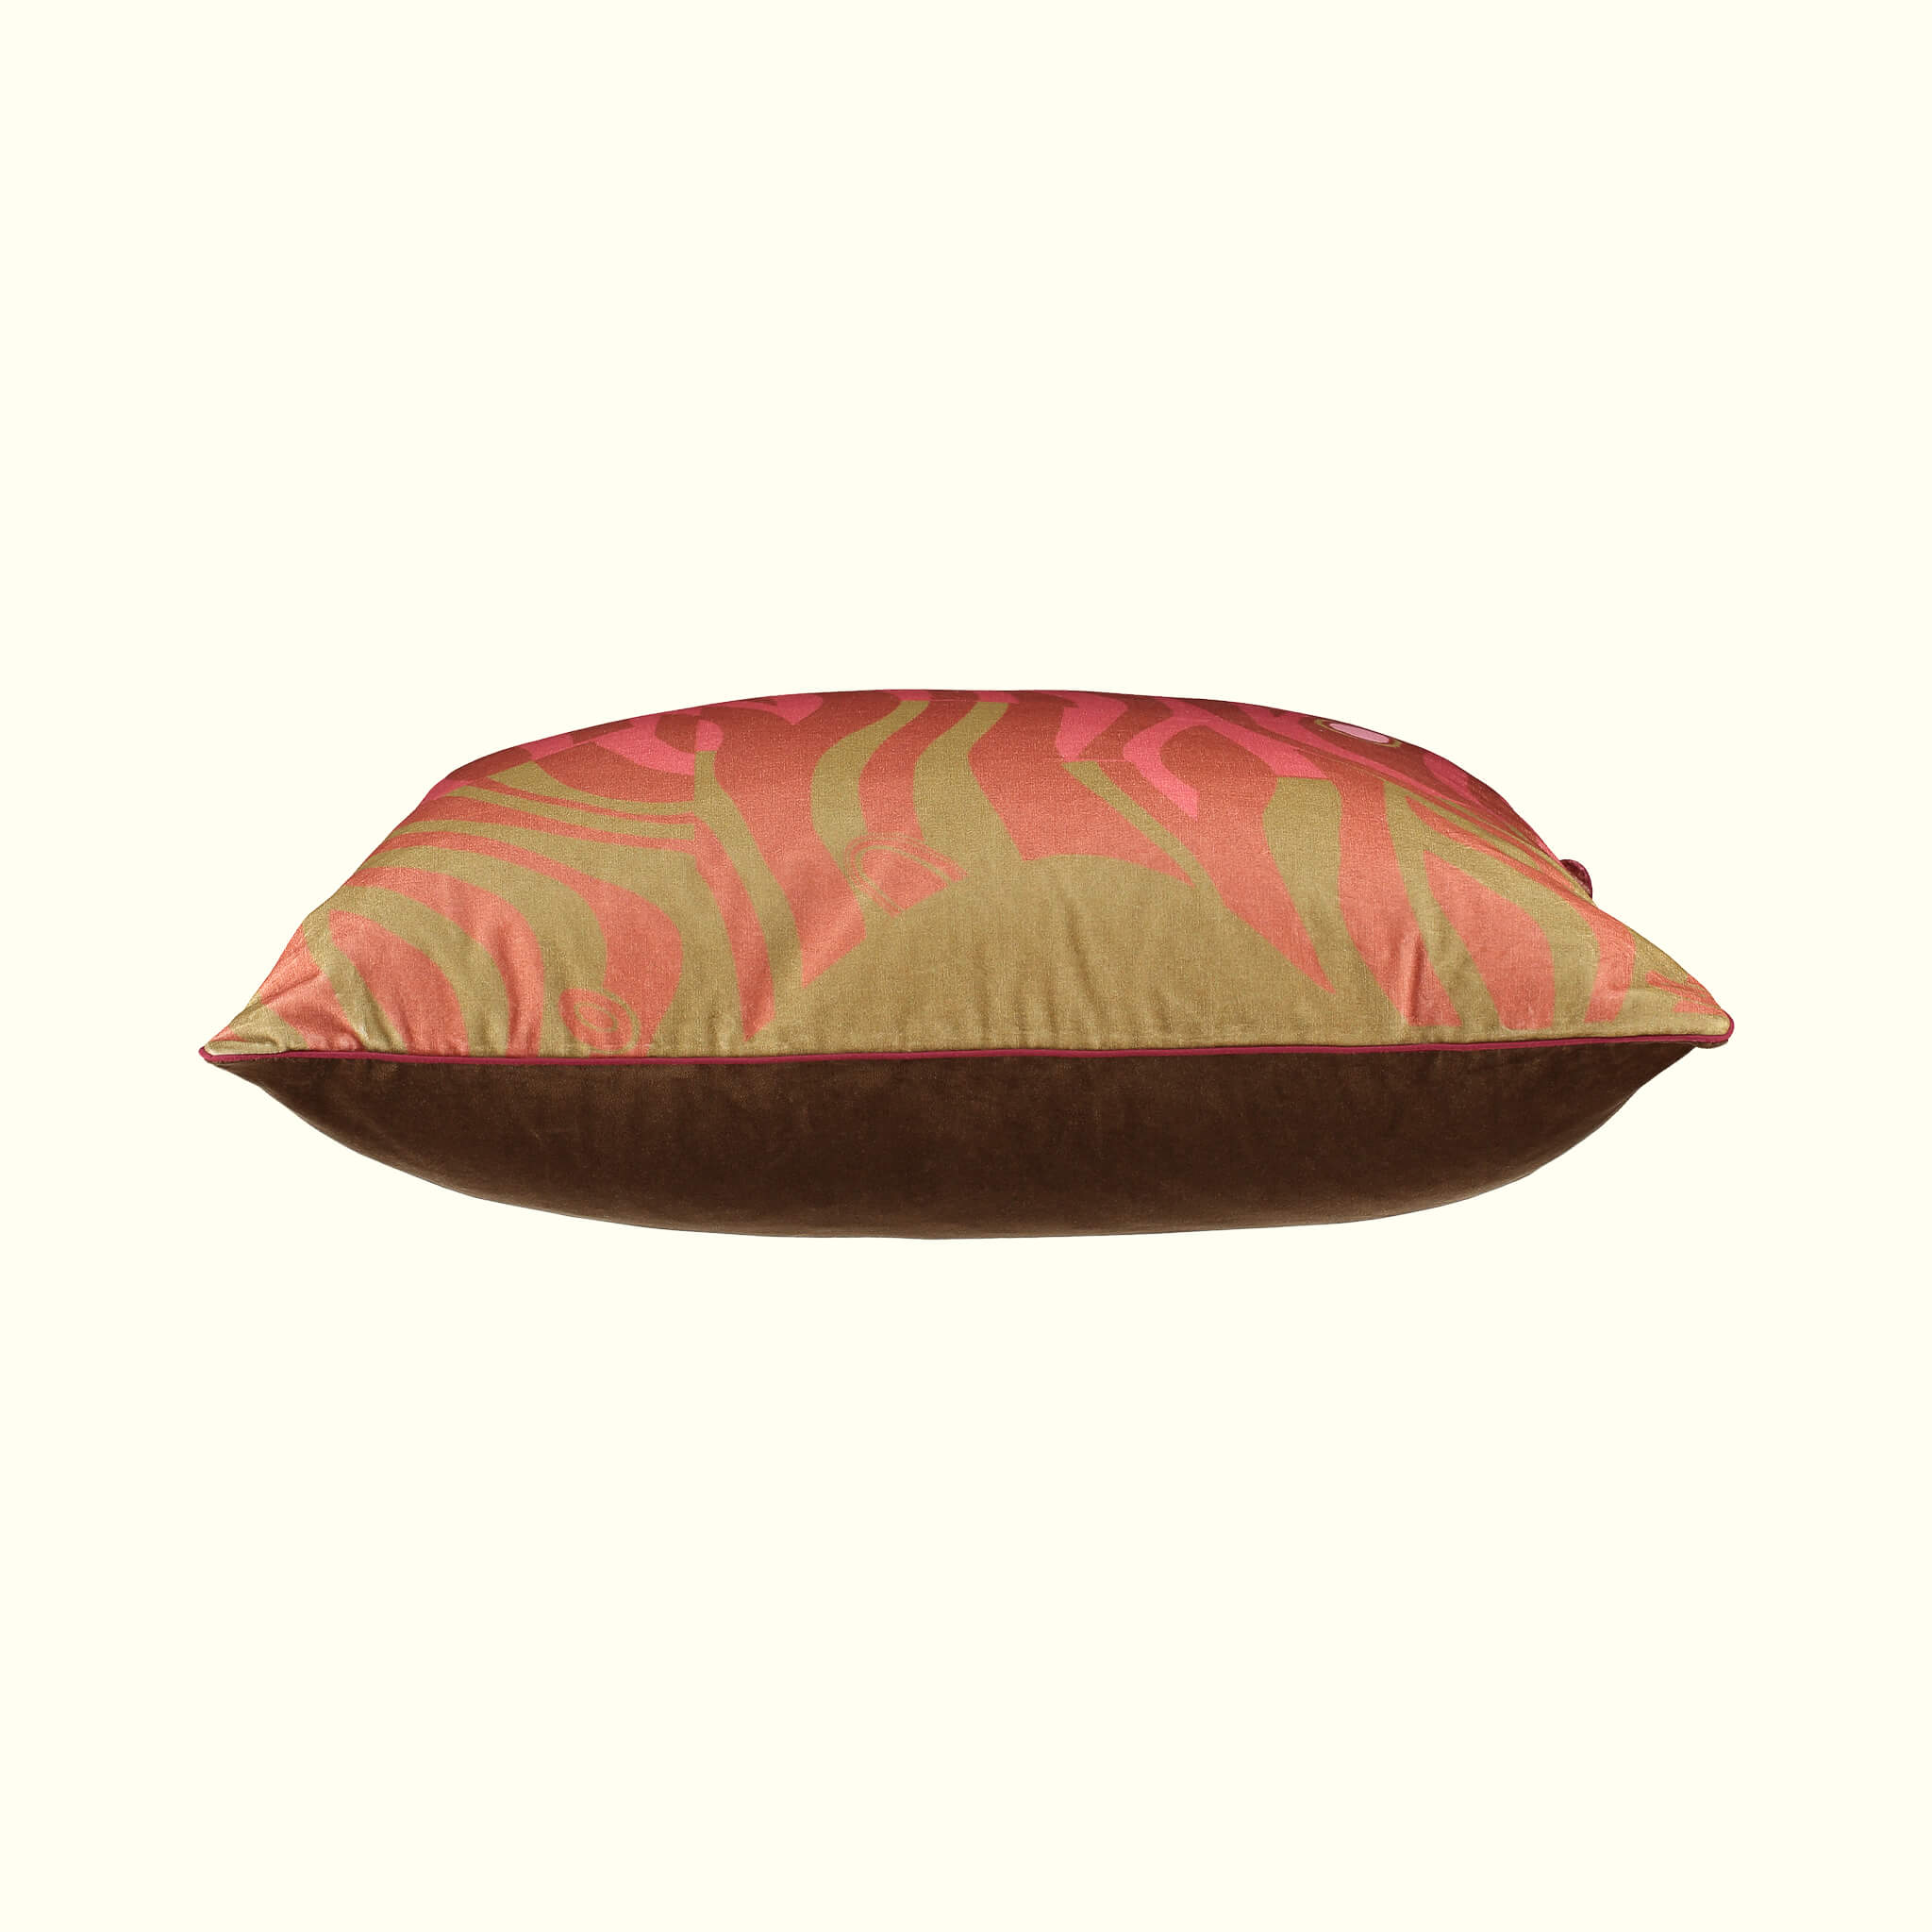 A luxury British cotton velvet cushion by GVE in rose and artichoke Dune print design.